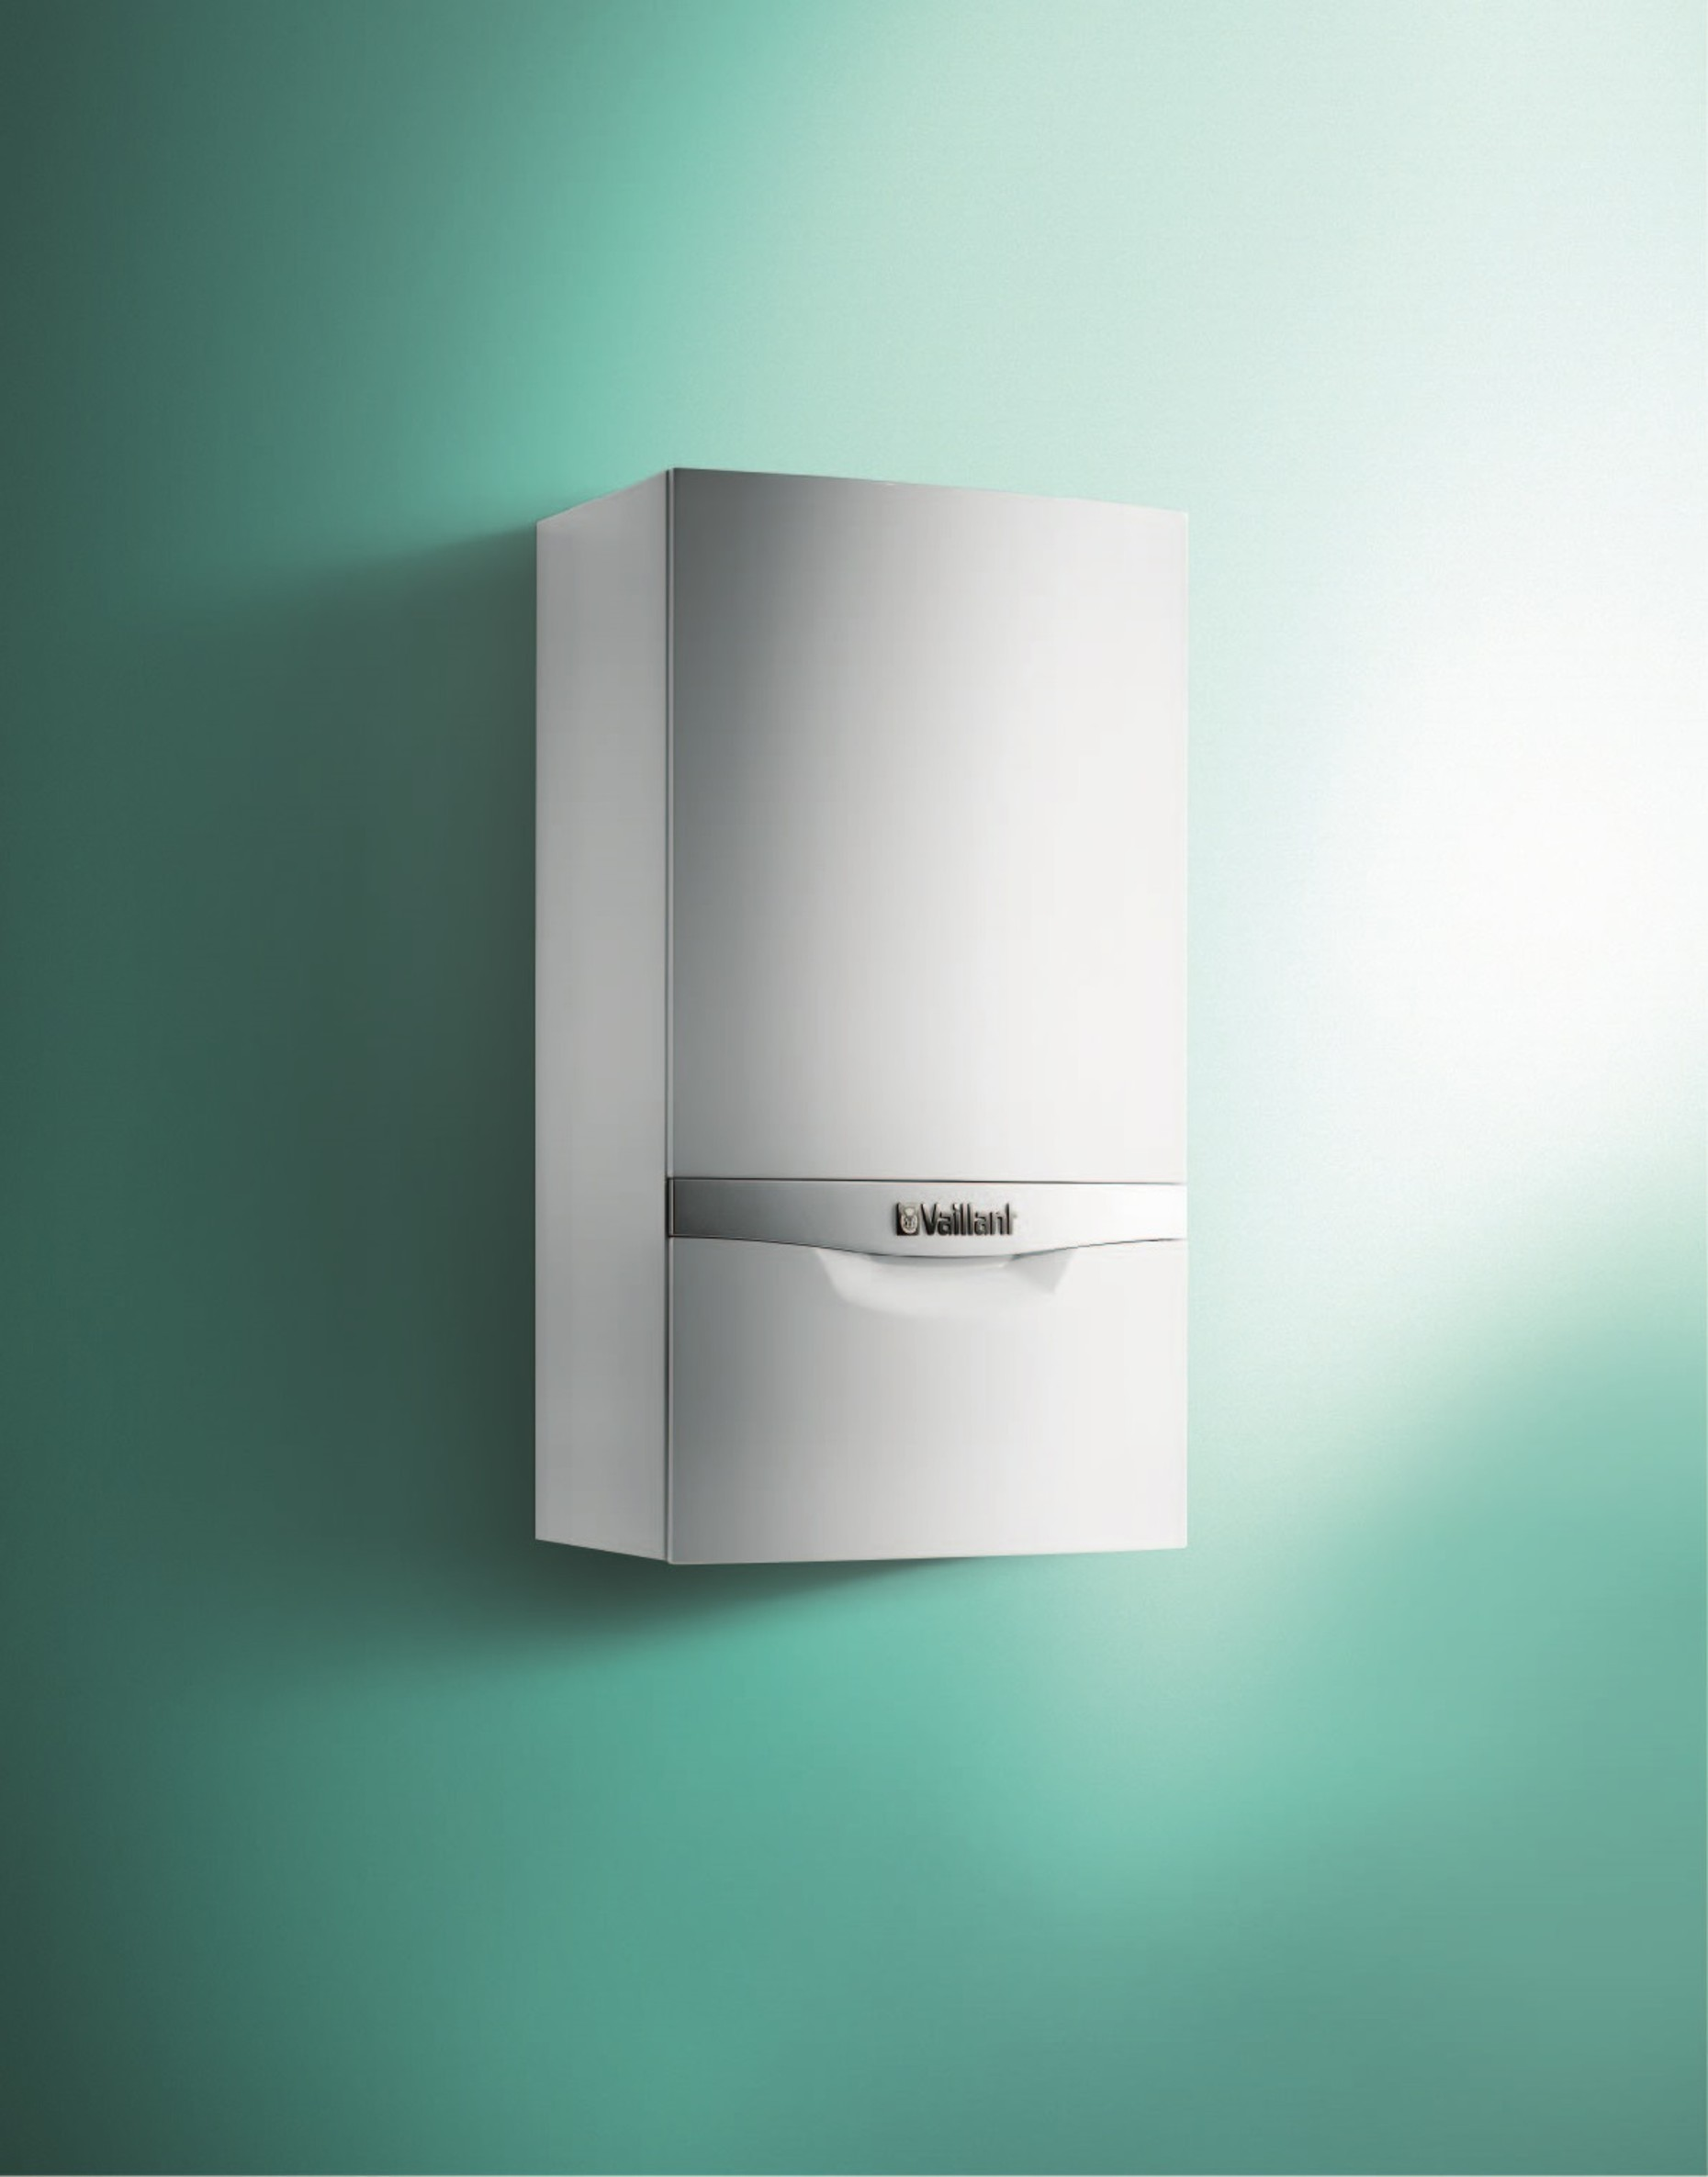 купить котел Vaillant turboTEC plus VUW 242 5 5,котел Vaillant turboTEC plus VUW 242 5 5,Vaillant turboTEC plus VUW 202 ,котел Vaillant turboTEC plus VUW 202  цена,котел ваиллант турботек плюс вув 202 5 5